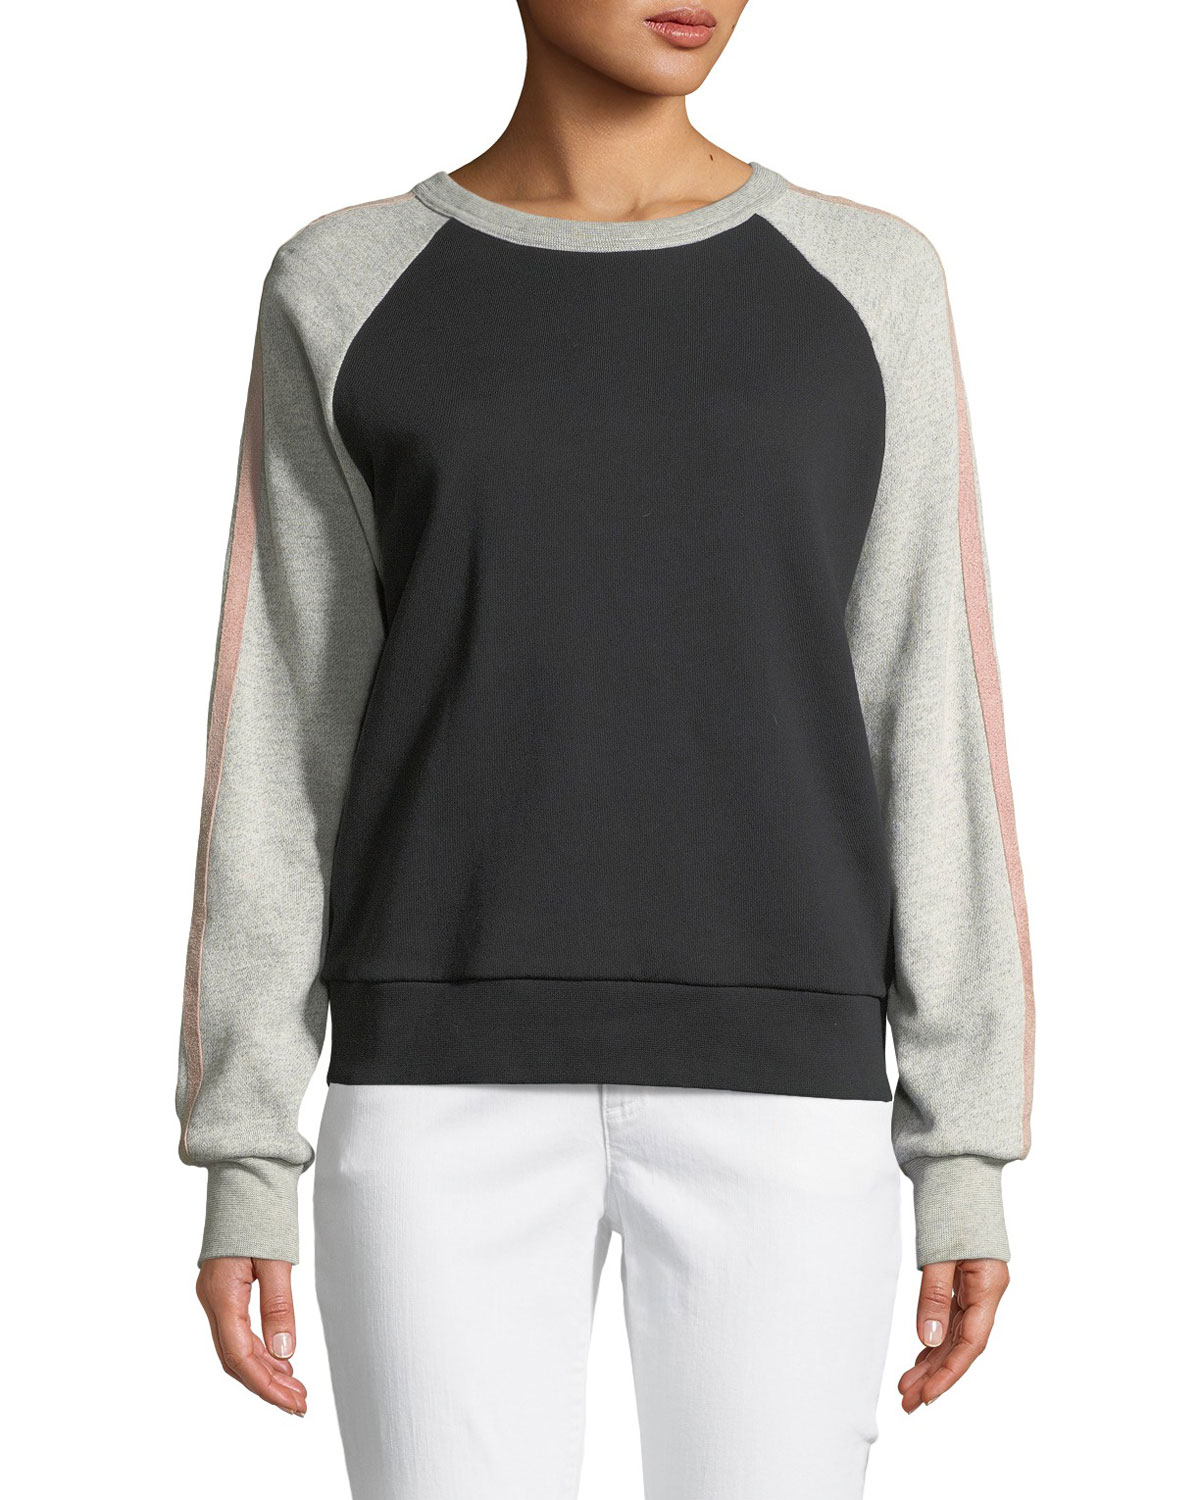 Crewneck Raglan Colorblocked Sweatshirt